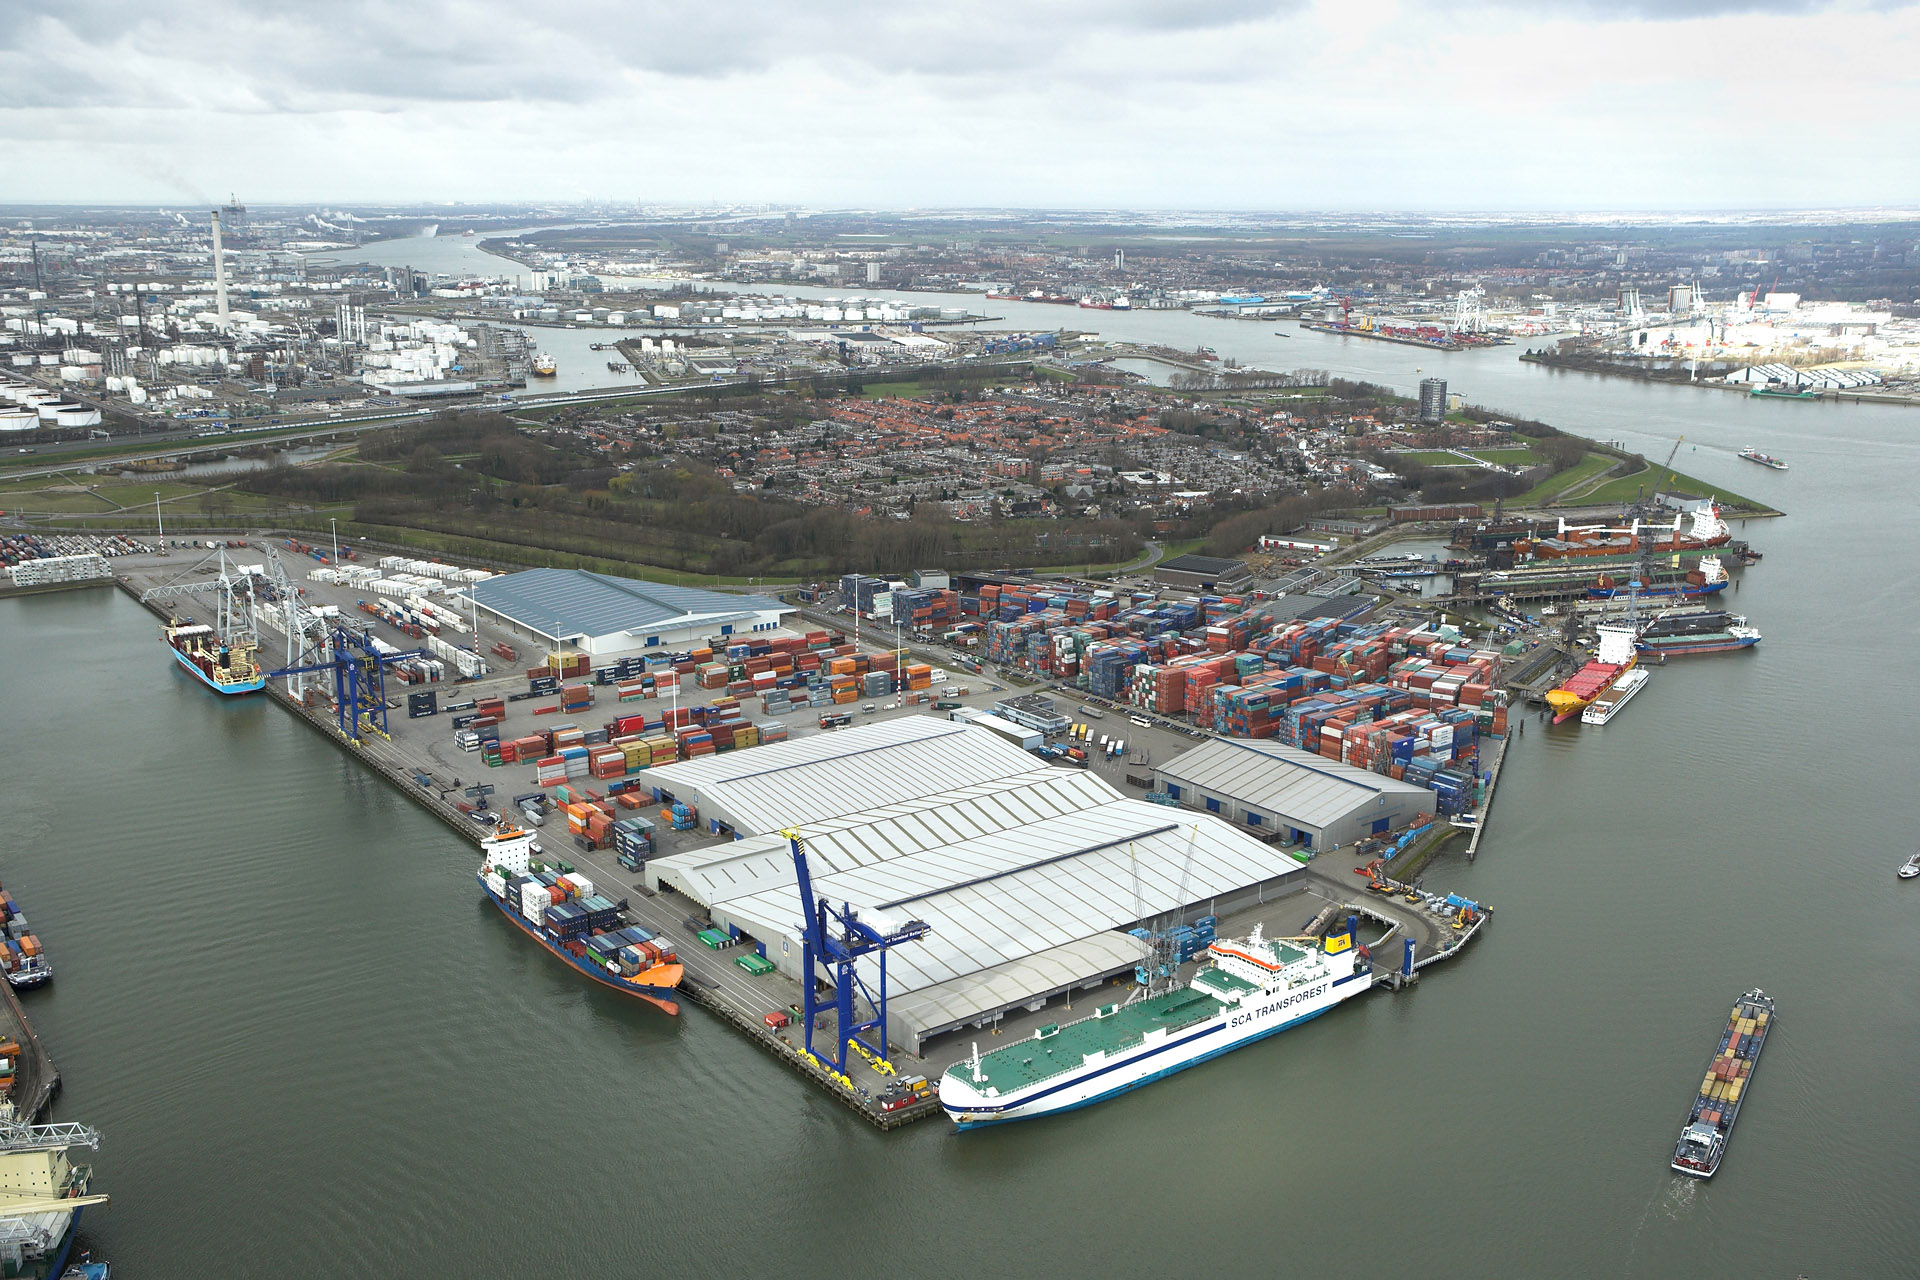 port of rotterdam essay Port of rotterdam is located in the city of rotterdam in the netherlands the high importance of this port is indisputable it is the largest port in europe and one of the busiest ports in the world.